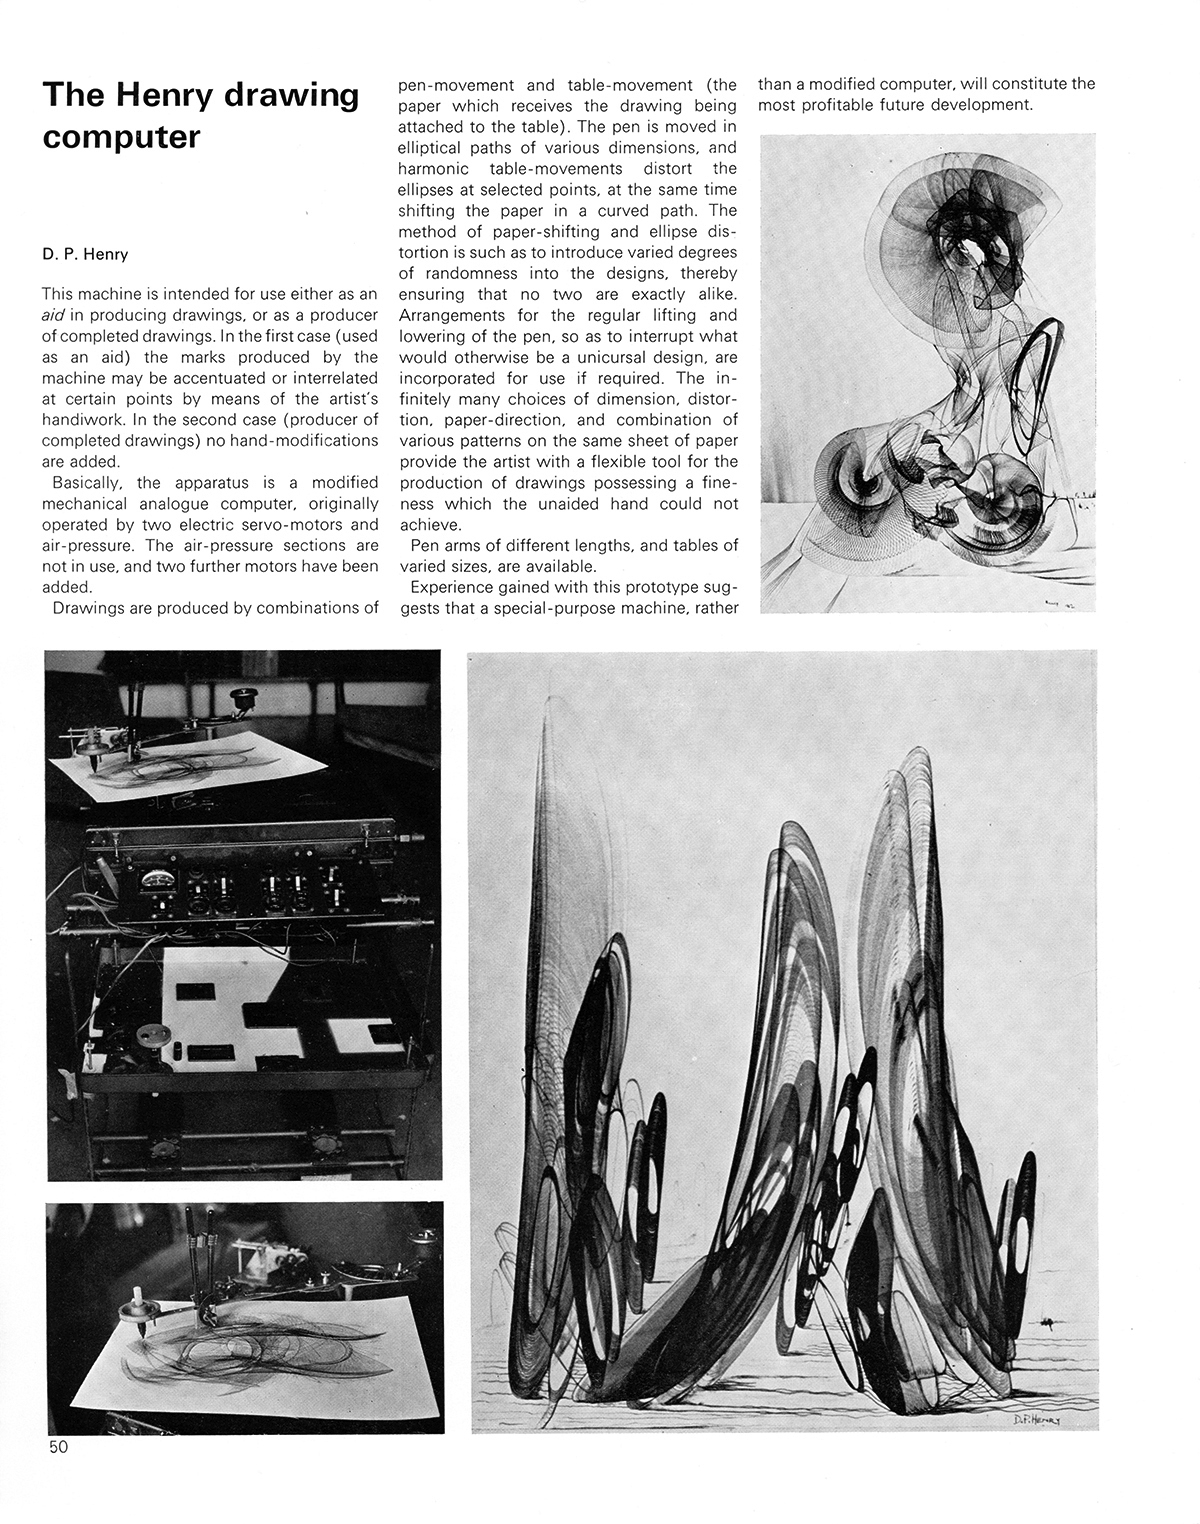 The Henry drawing computer by D.P. Henry. Cybernetic Serendipity: The Computer and the Arts, Studio International Special Issue, 1968, page 50.